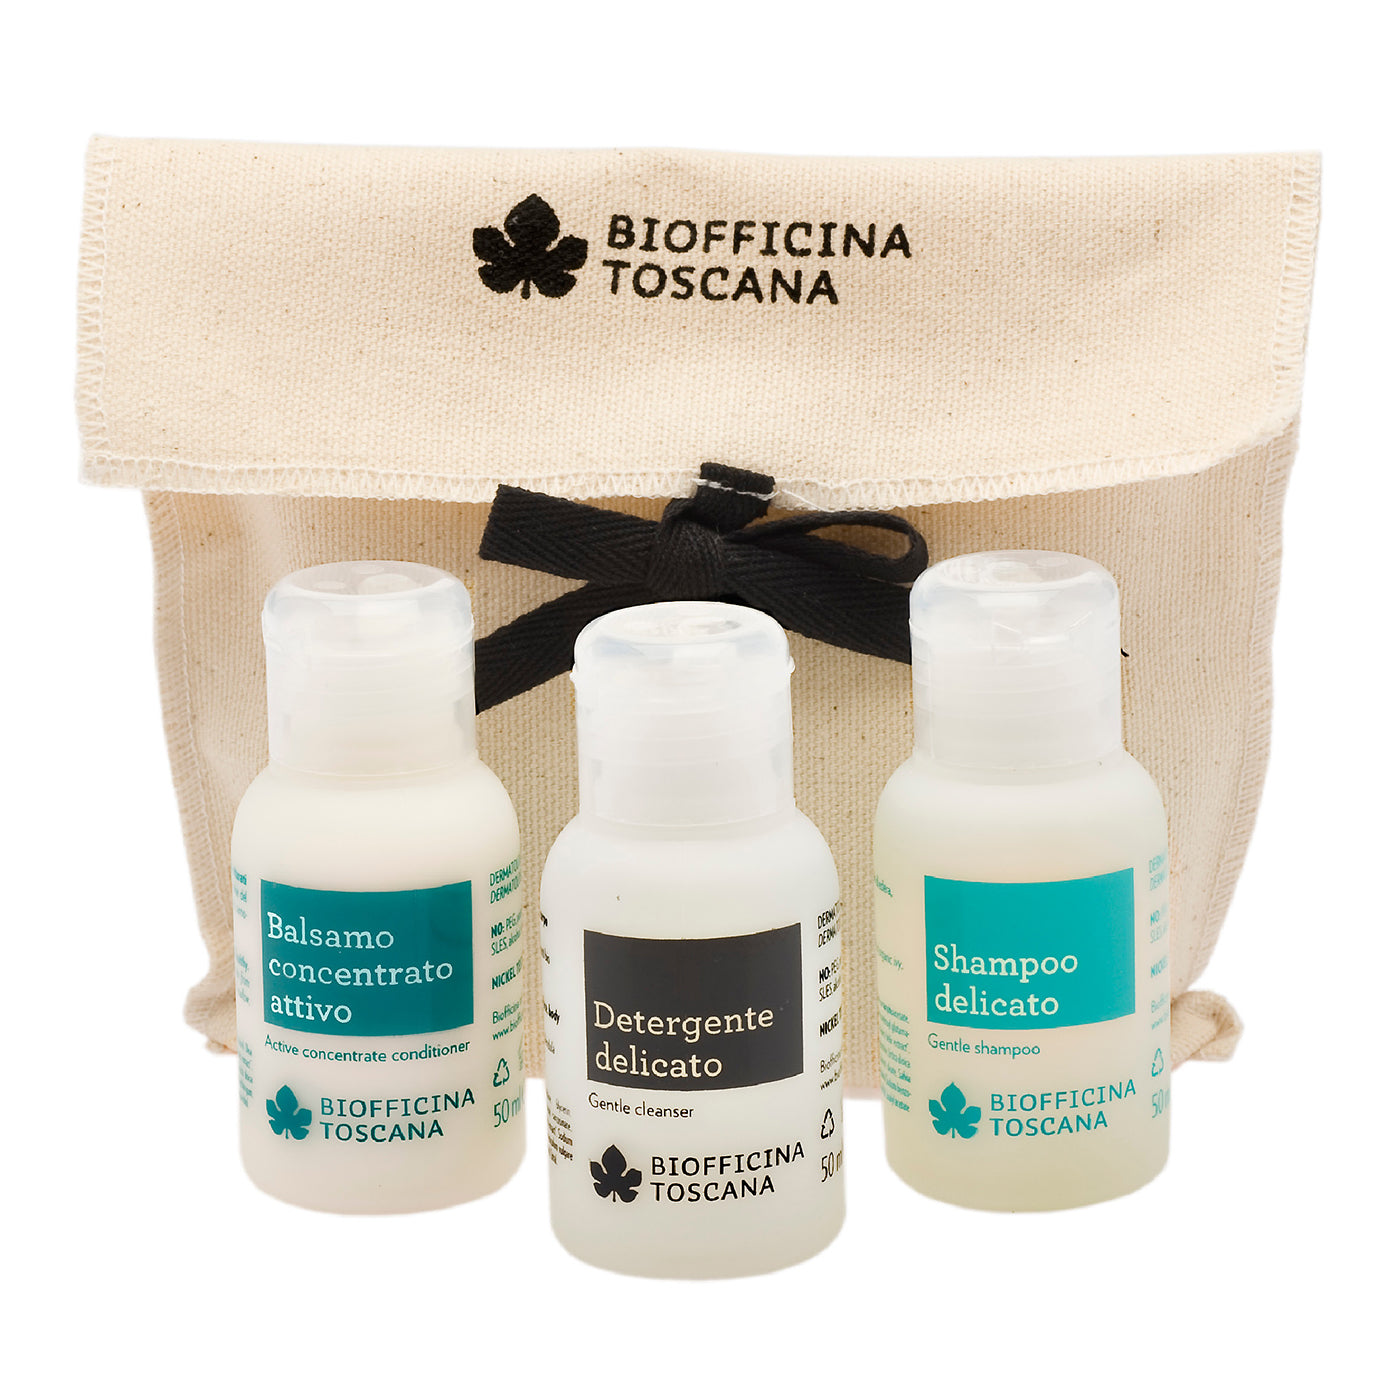 Biofficina Toscana Travel Kit